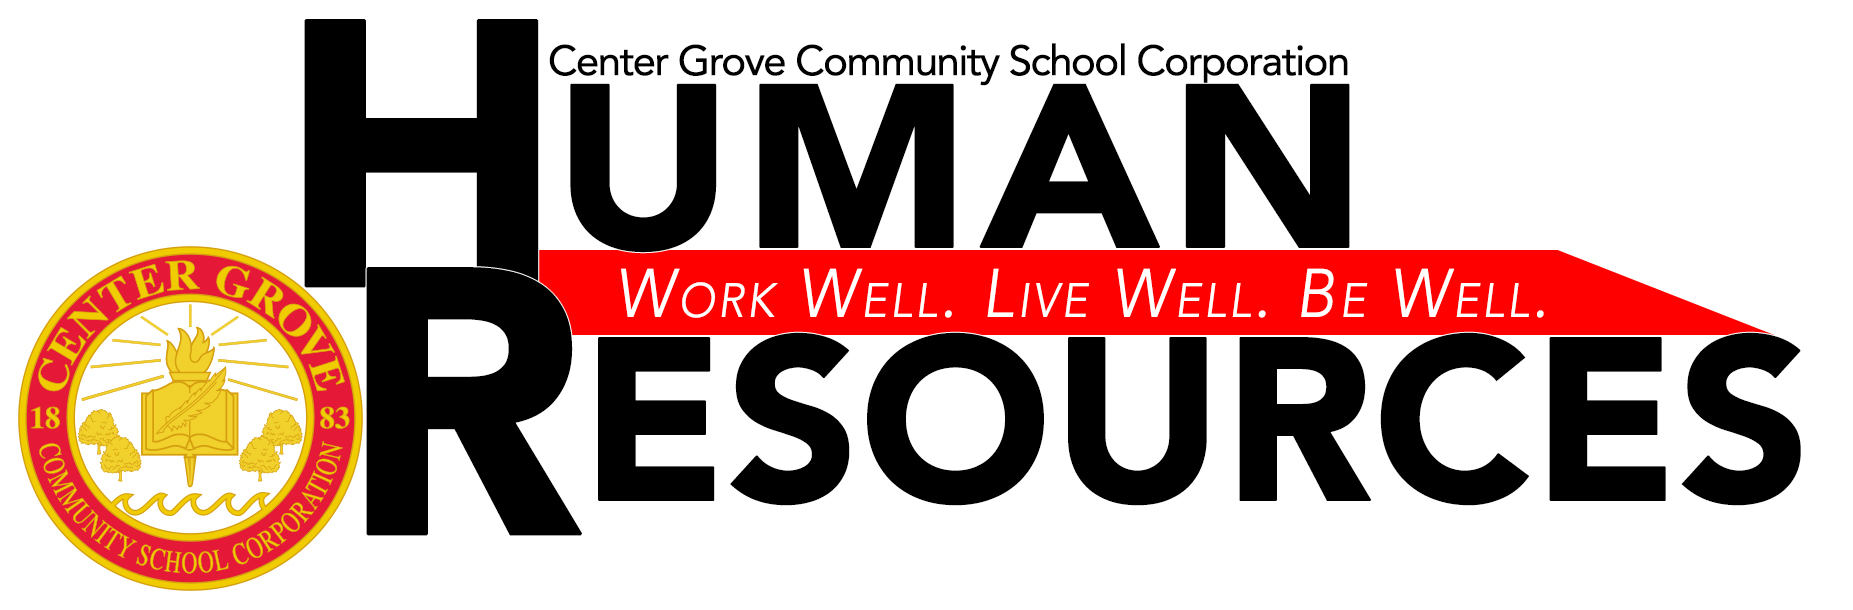 CGCSC Human Resources